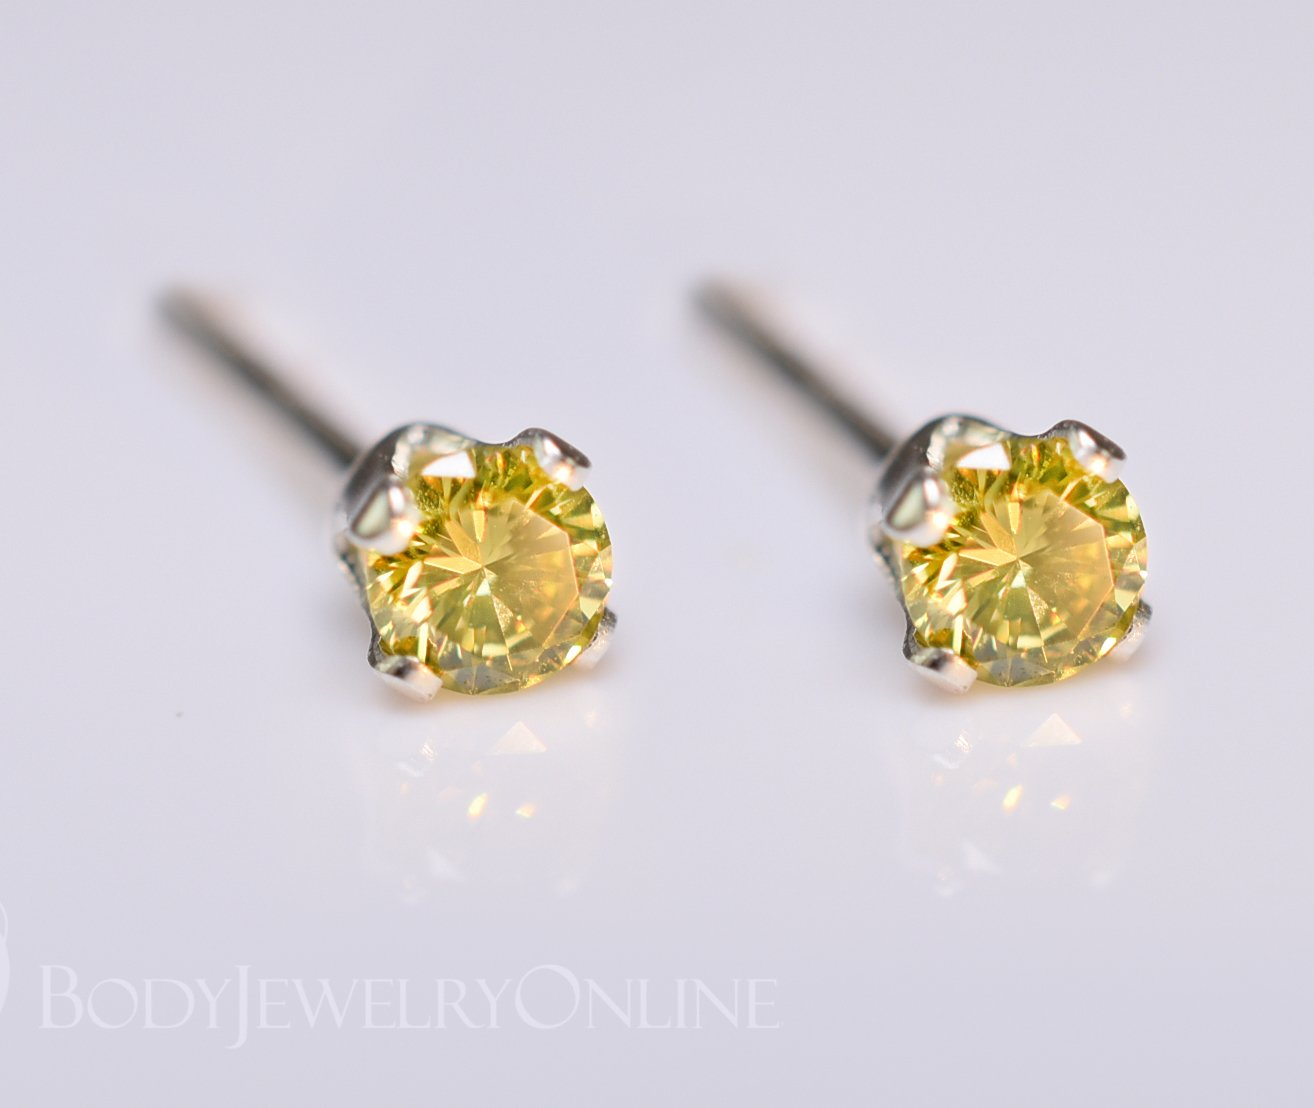 Genuine CANARY YELLOW DIAMOND Earring Studs 2mm 0.08tcw Post 14k Solid Gold (Yellow, Rose or White), Platinum, Silver Lobe Cartilage Helix Tragus